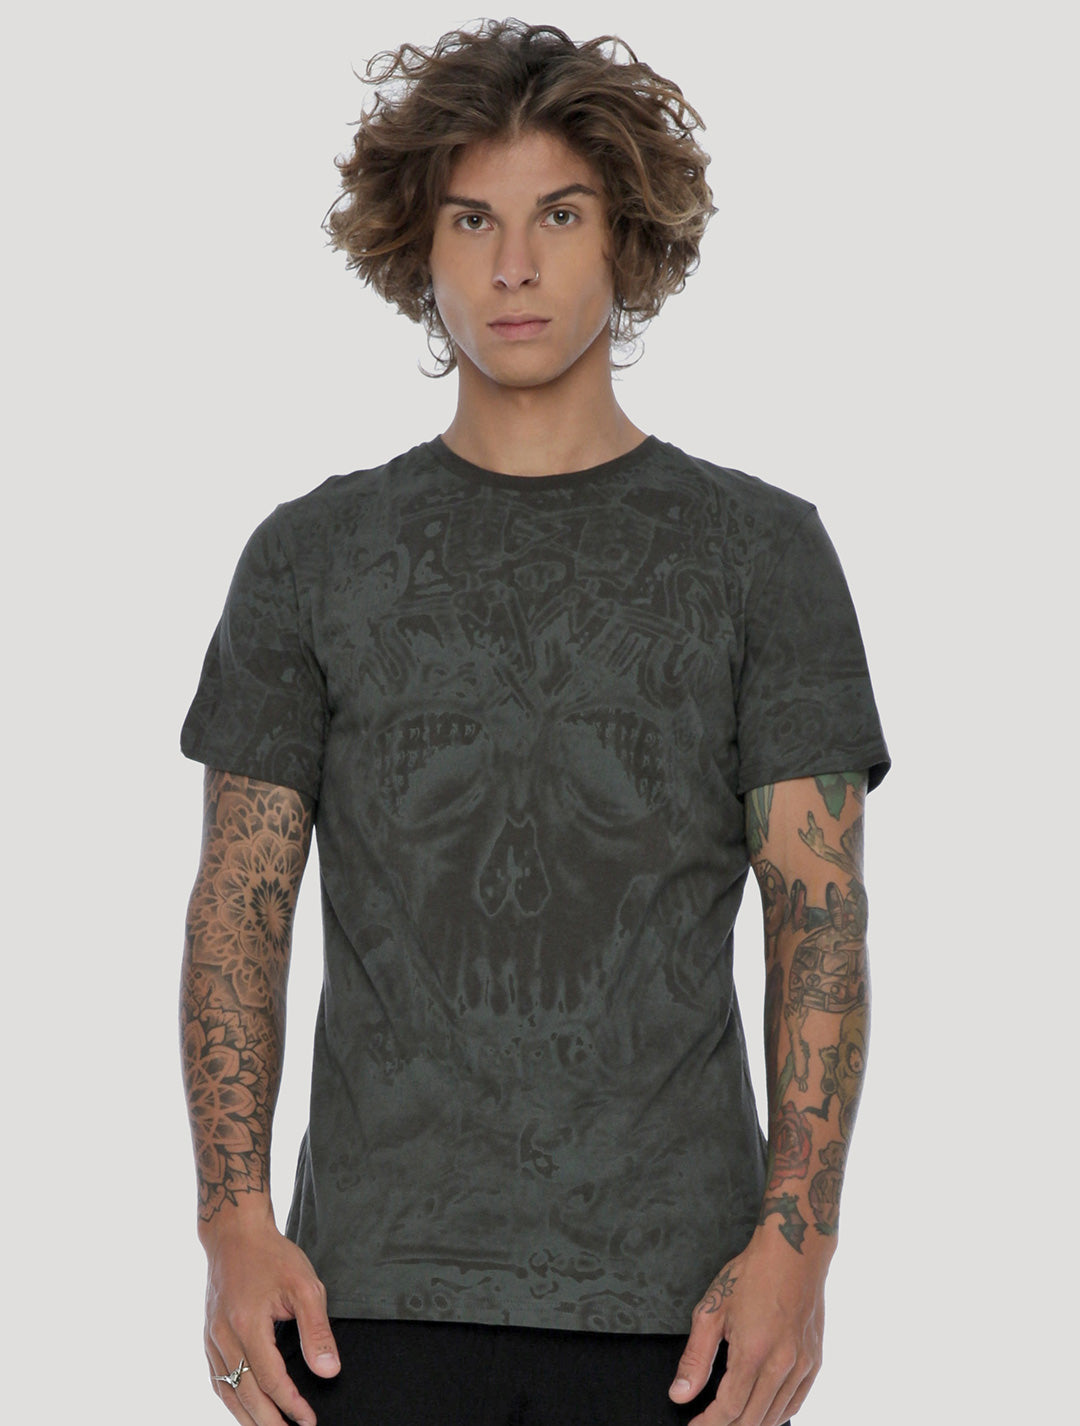 Anunnaki Short Sleeves Tee in olive green - by Psylo Fashion